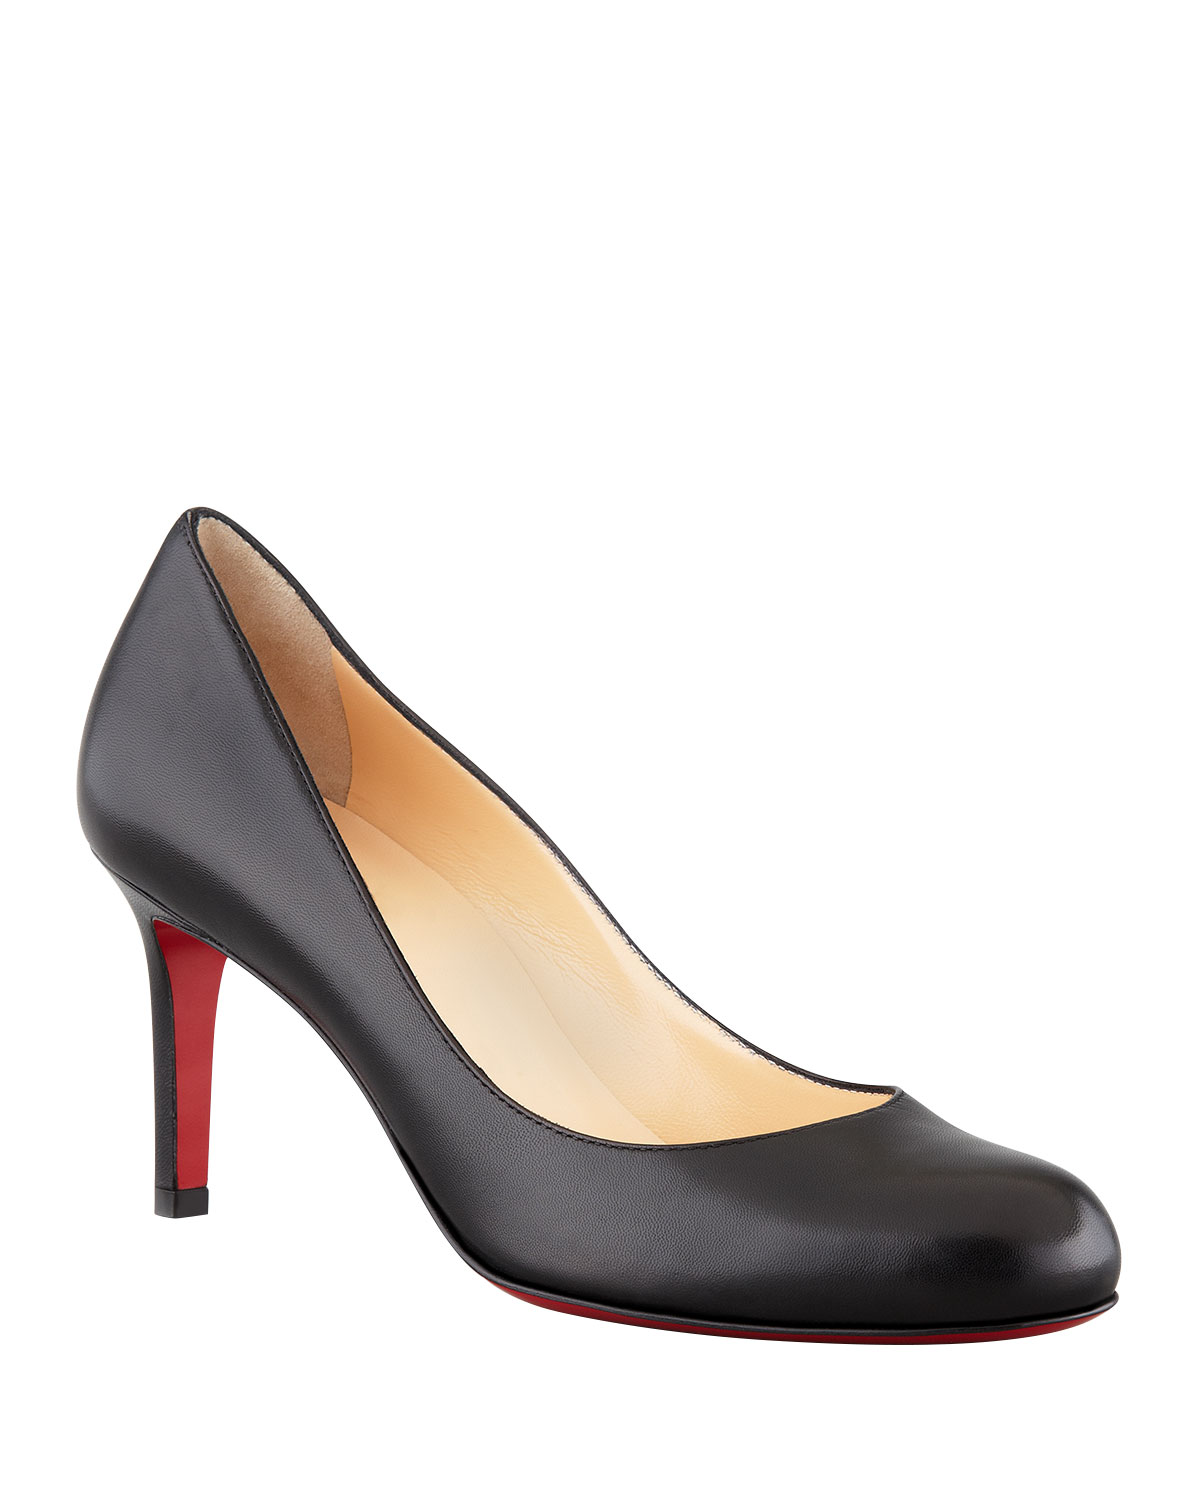 c3f6ee4640e9 Christian Louboutin Simple Leather Red Sole Pumps